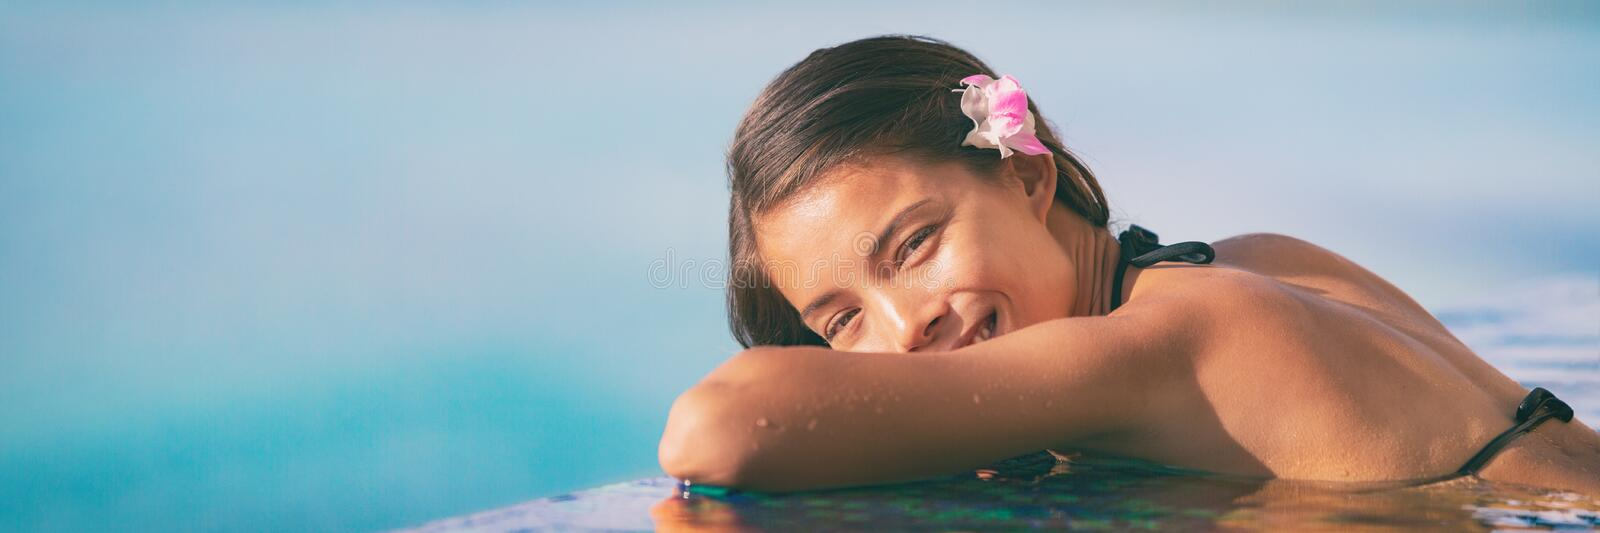 Spa wellness woman relaxing in blue panoramic banner. Happy Asian woman at luxury hotel resort  infinity pool royalty free stock photo